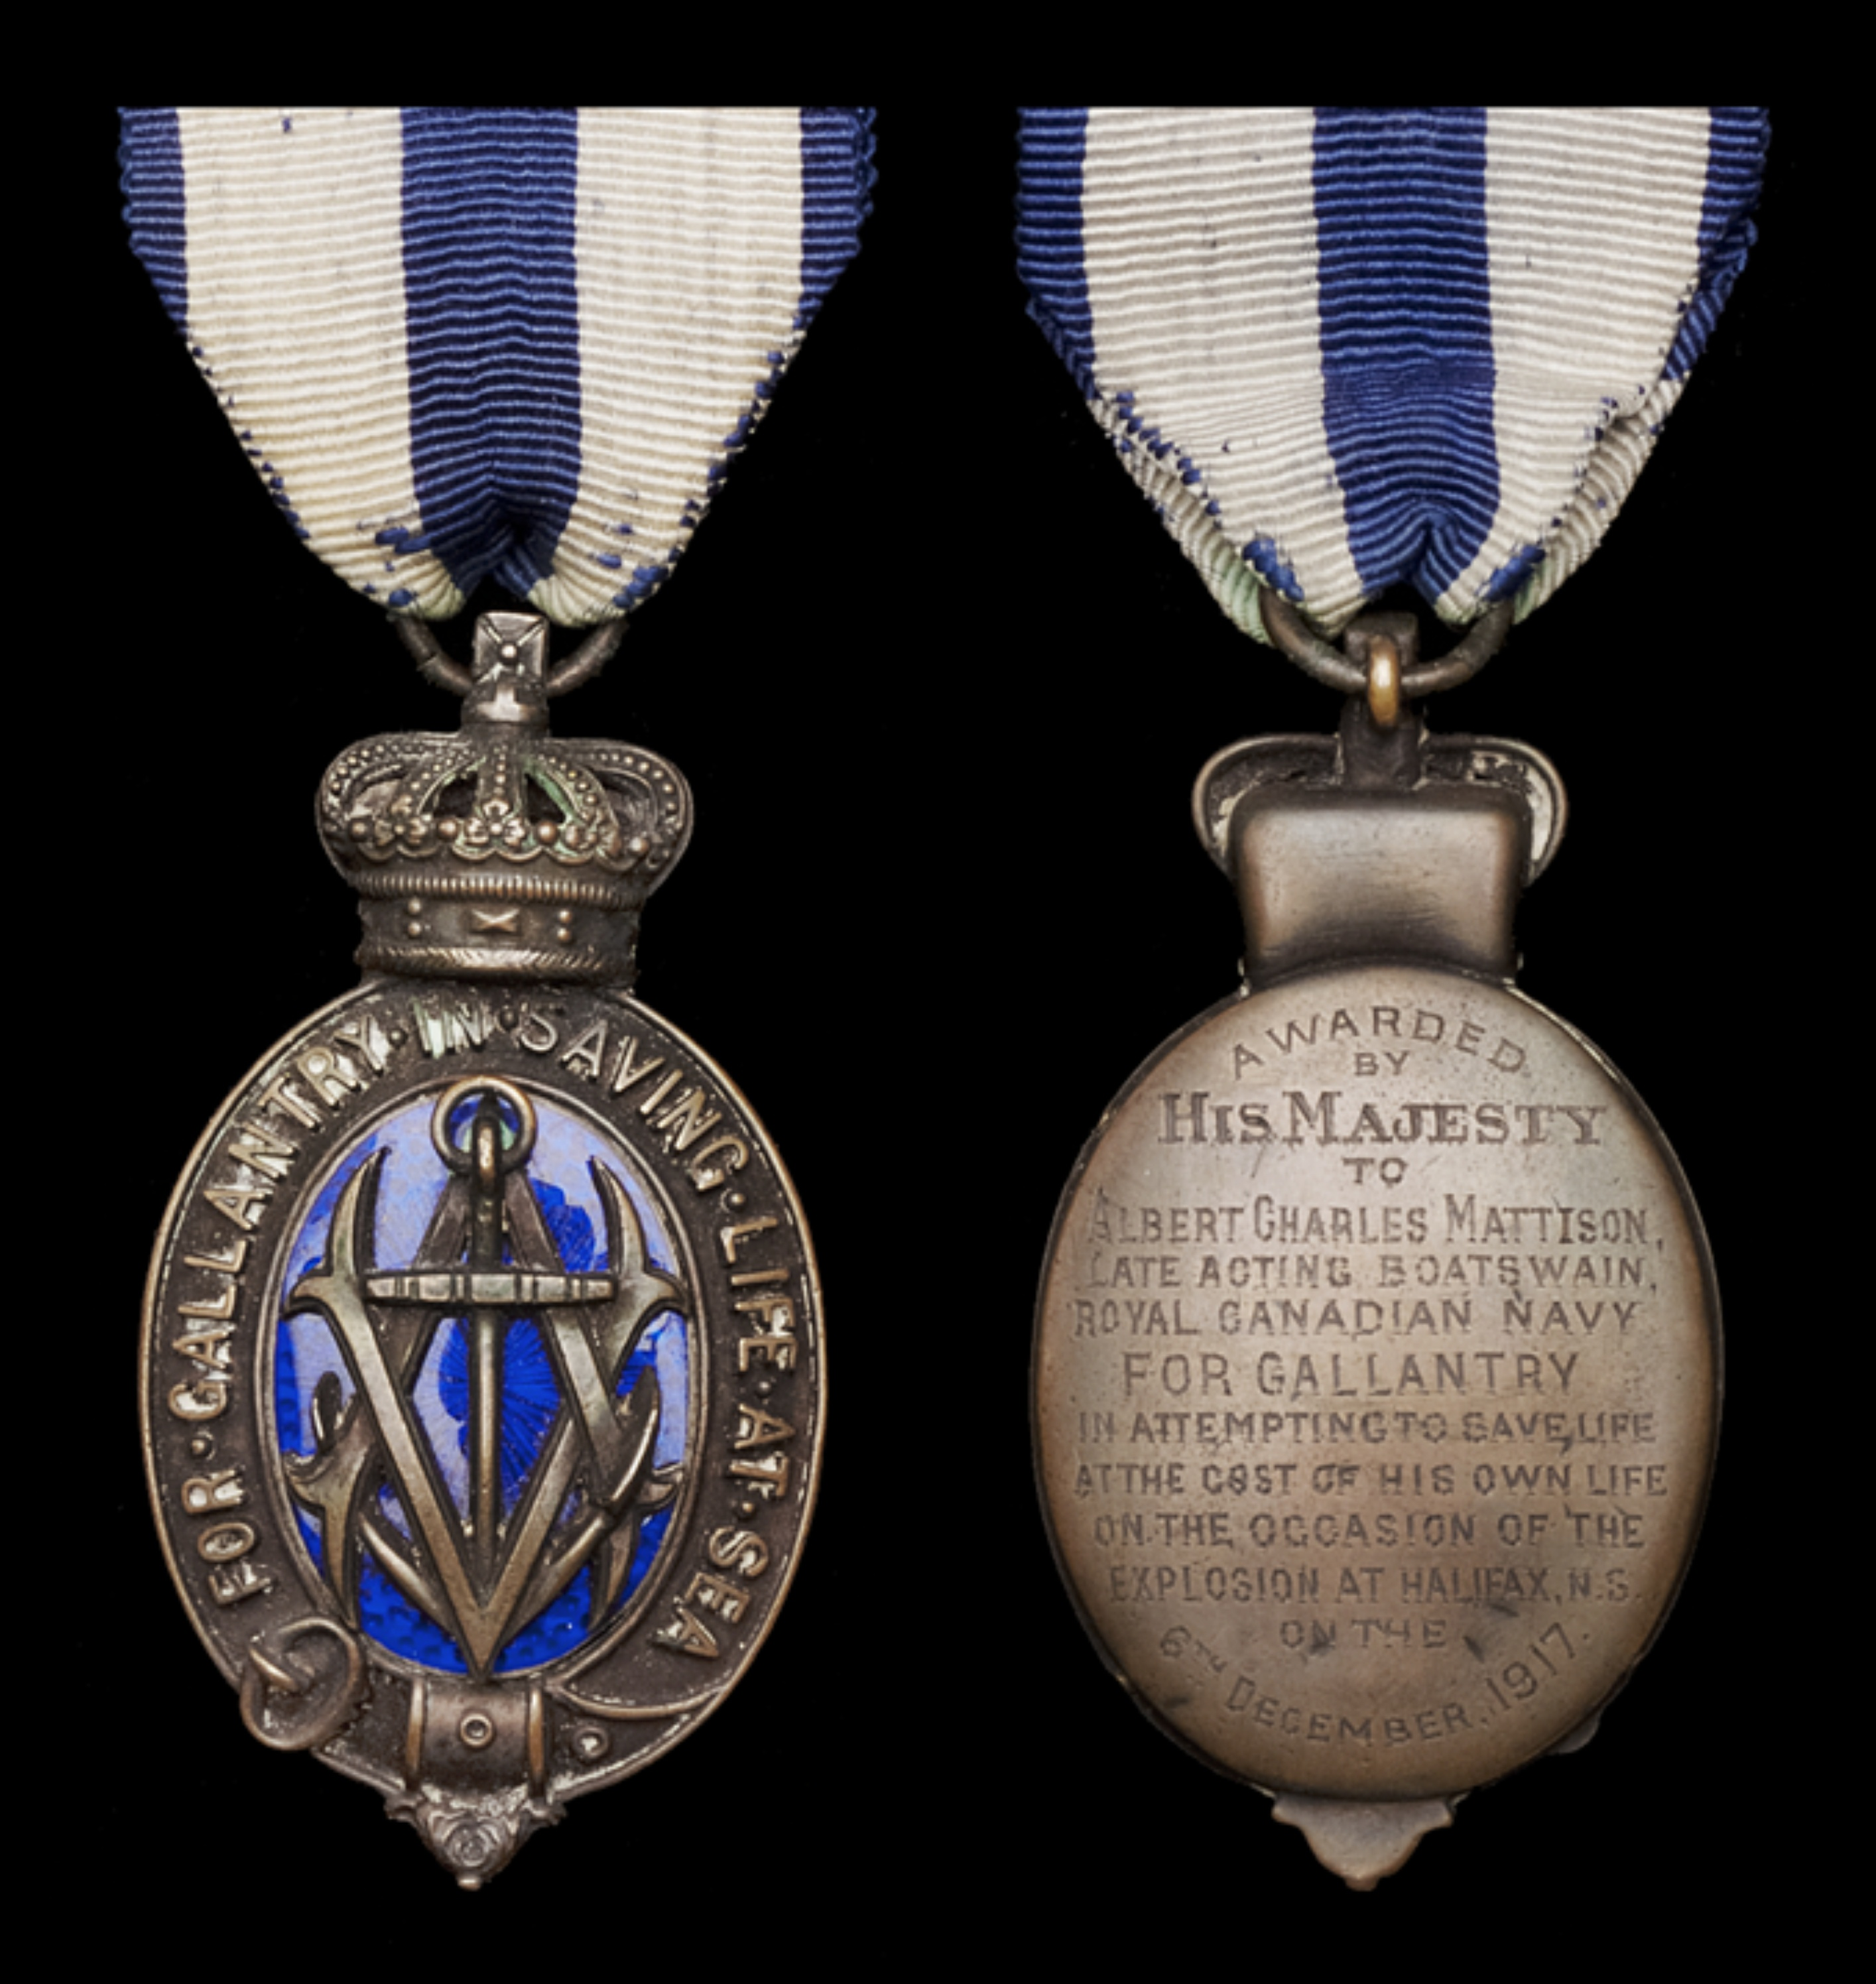 Albert Medal– The Albert Medal, 2nd Class, for Gallantry in Saving Life at Sea, bronze and enamel, reverse inscribed, 'Awarded by His Majesty to Albert Charles Mattison, late Acting Boatswain , Royal Canadian Navy, For Gallantry in attempting to save life at the cost of his own life on the occasion of the explosion at Halifax, N.S. on the 6th December 1917.'  The medal was awarded posthumously to Mattison's widow on 18 February 1919; it is currently held by the Canadian War Museum in Ottawa.